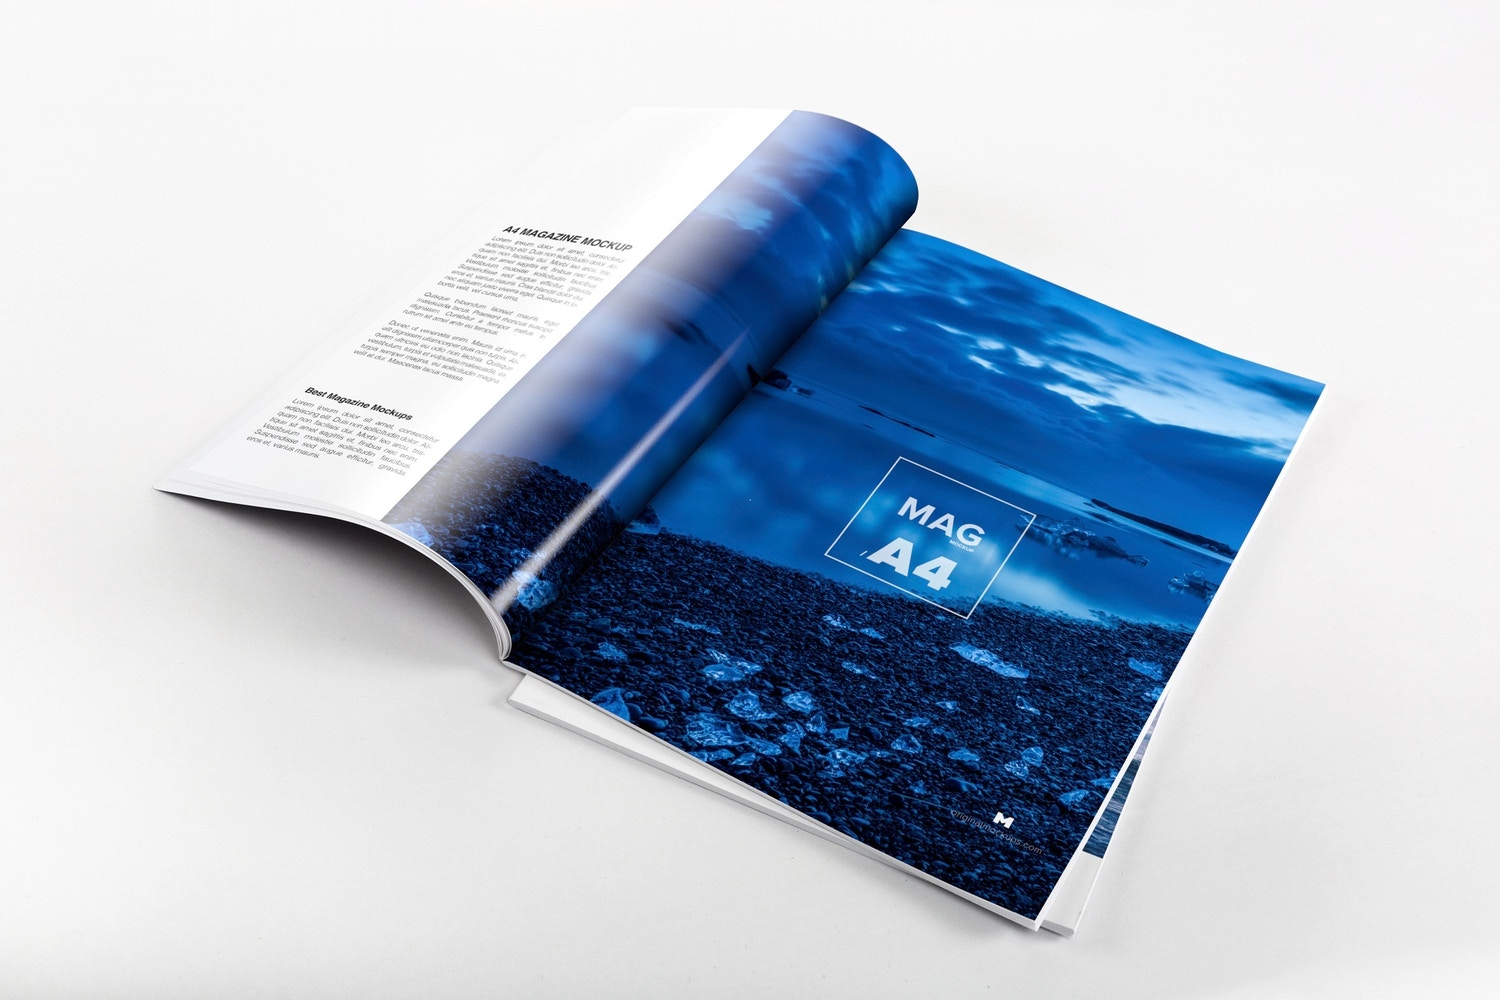 A4 Magazine Spread Mockup by Original Mockups on Original Mockups